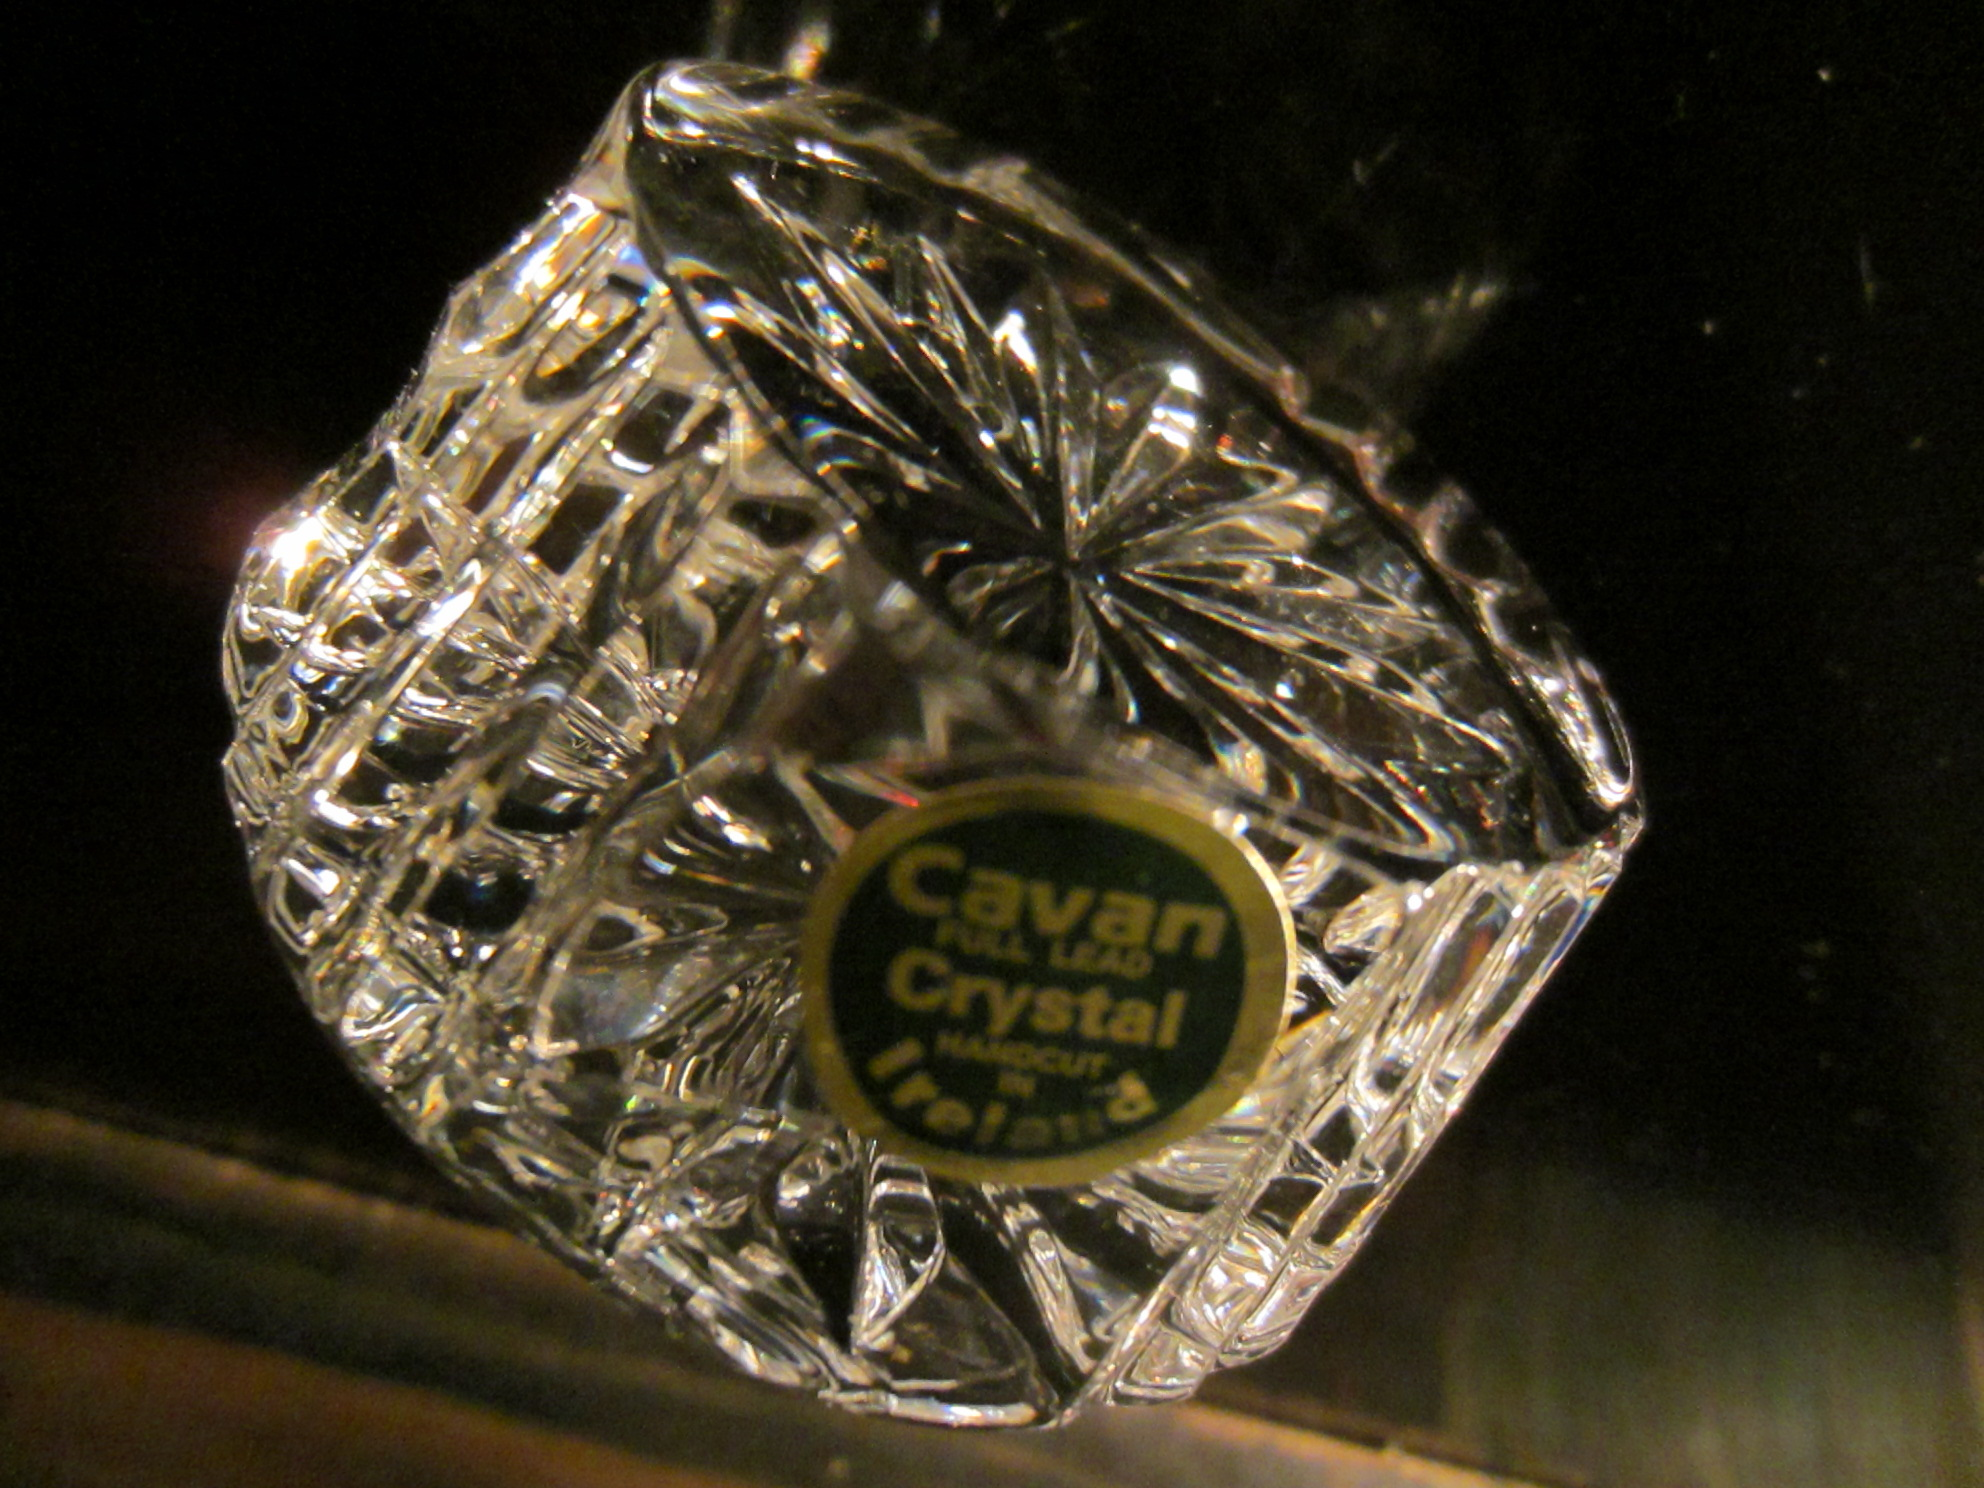 Cavan hand cut crystal paperweight made in ireland for for Cava cristal